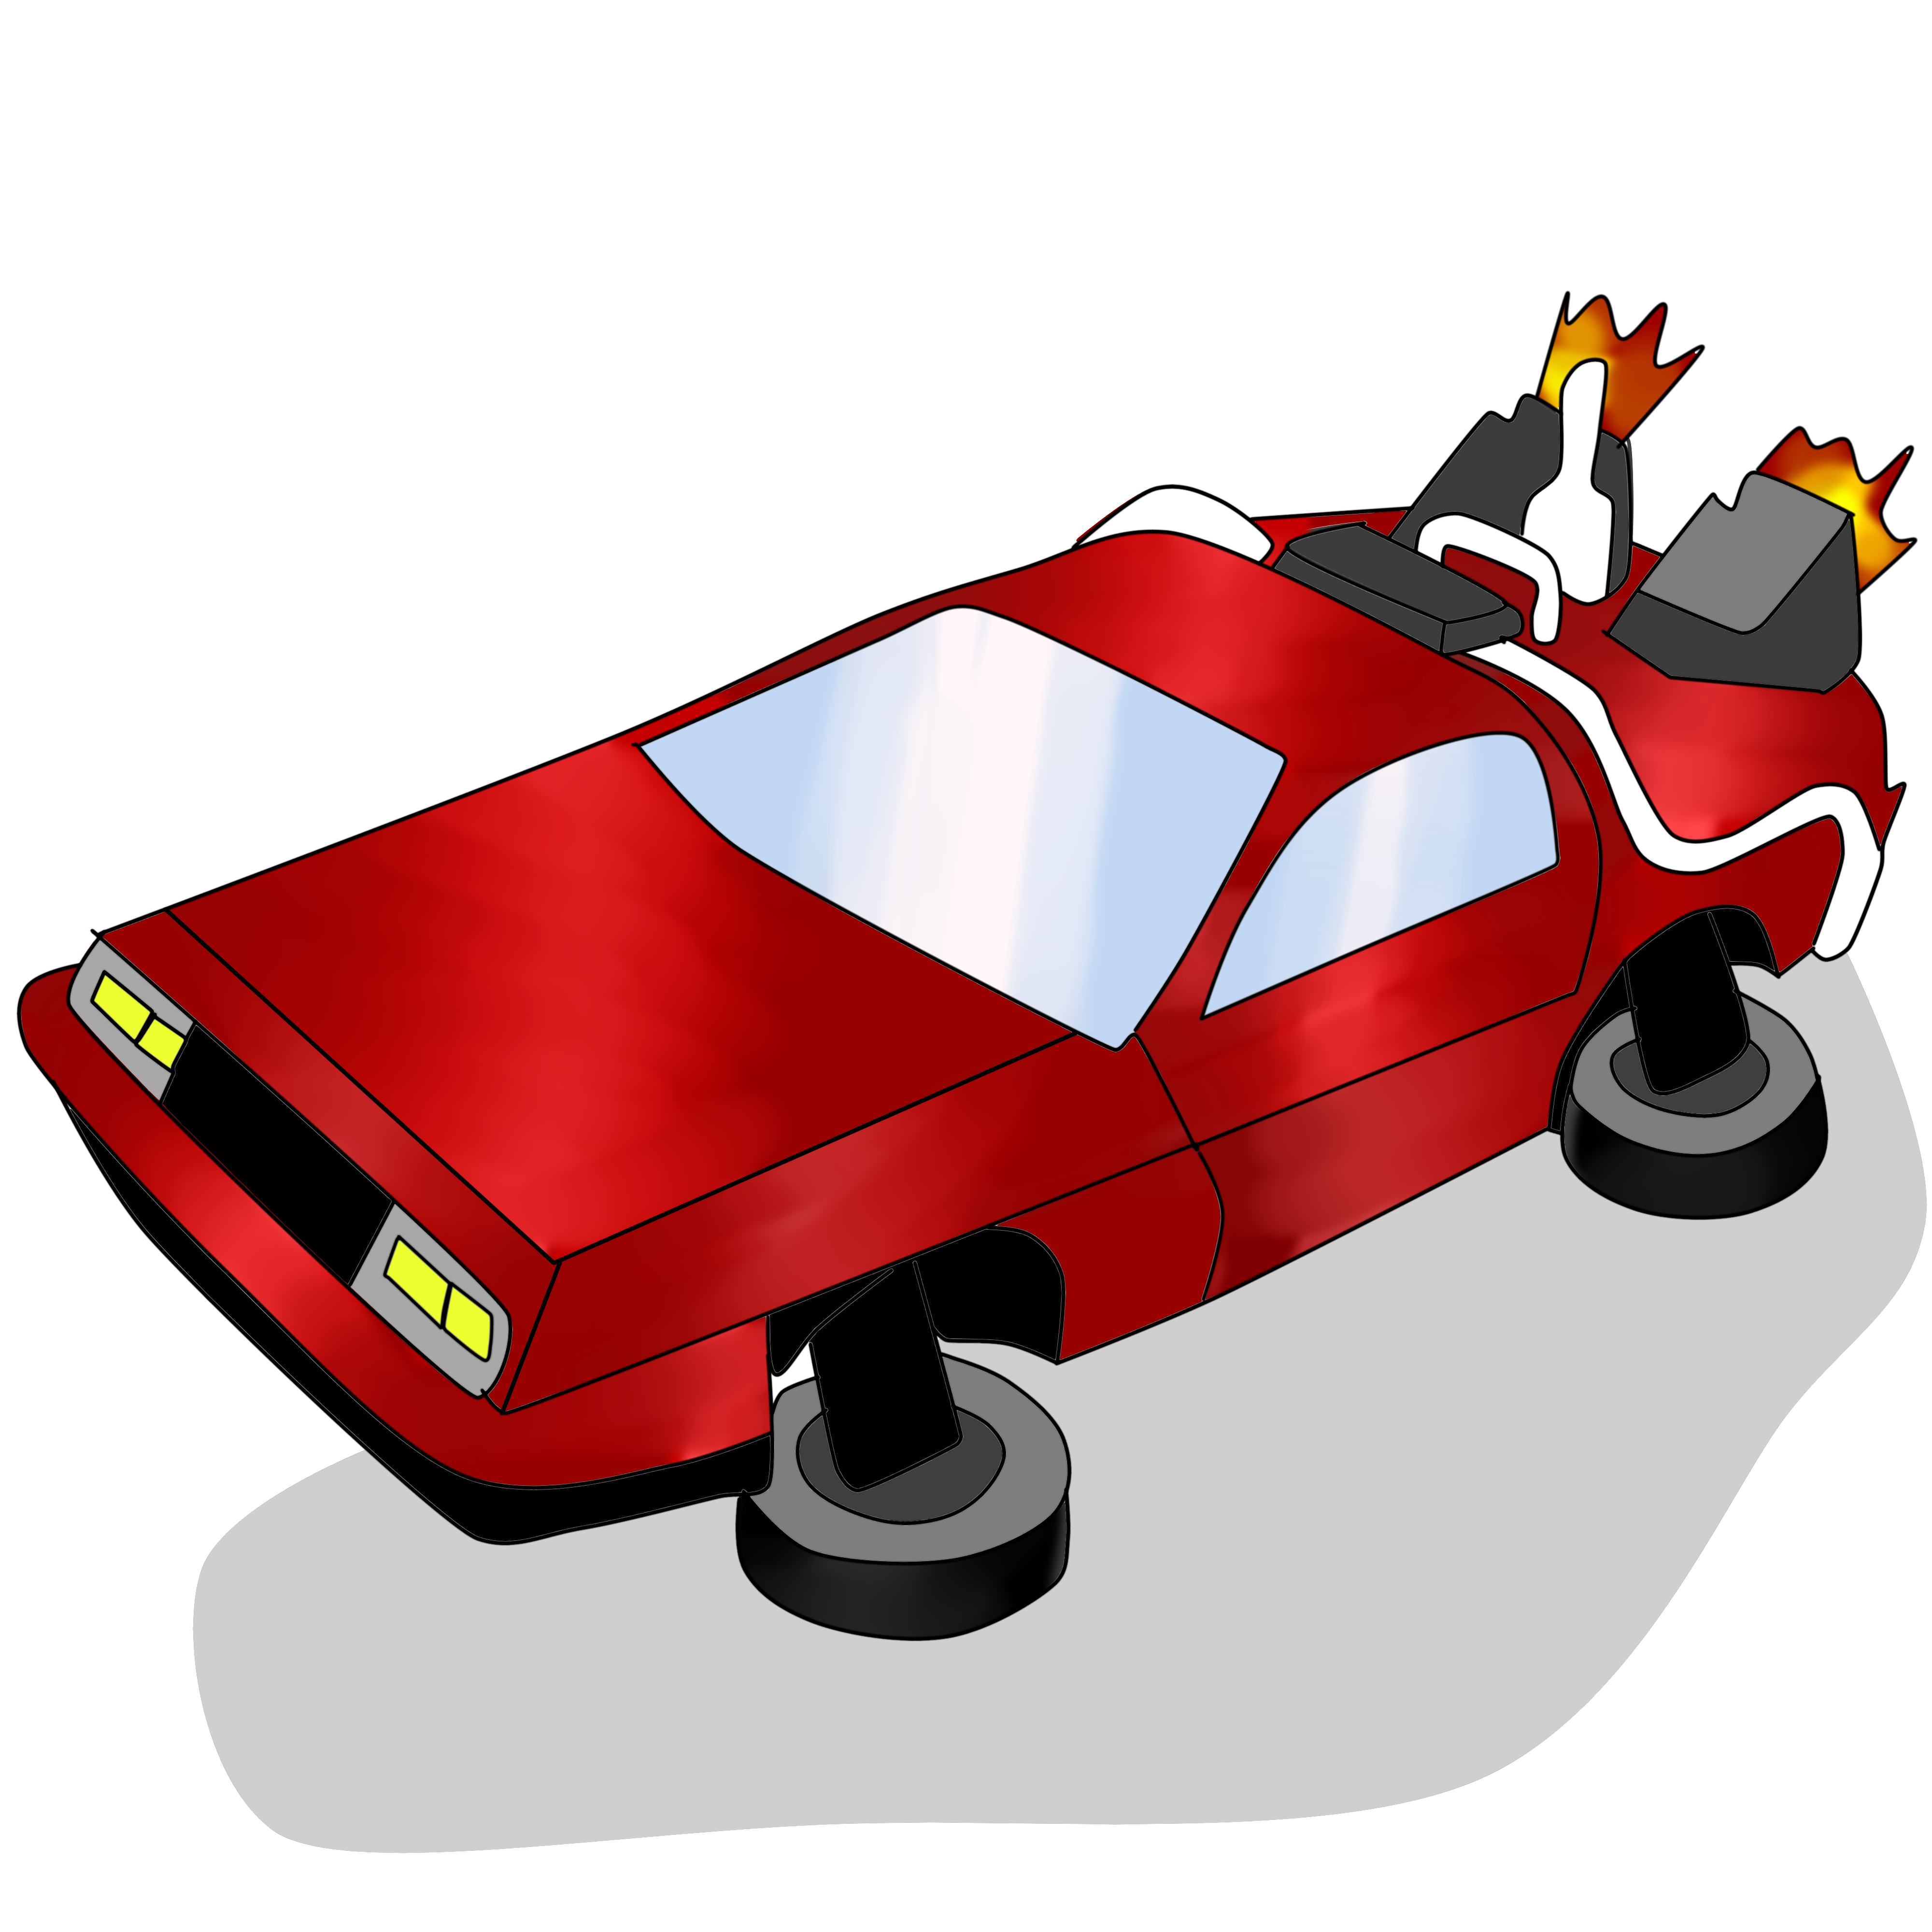 Flying car clipart clipart images gallery for free download.